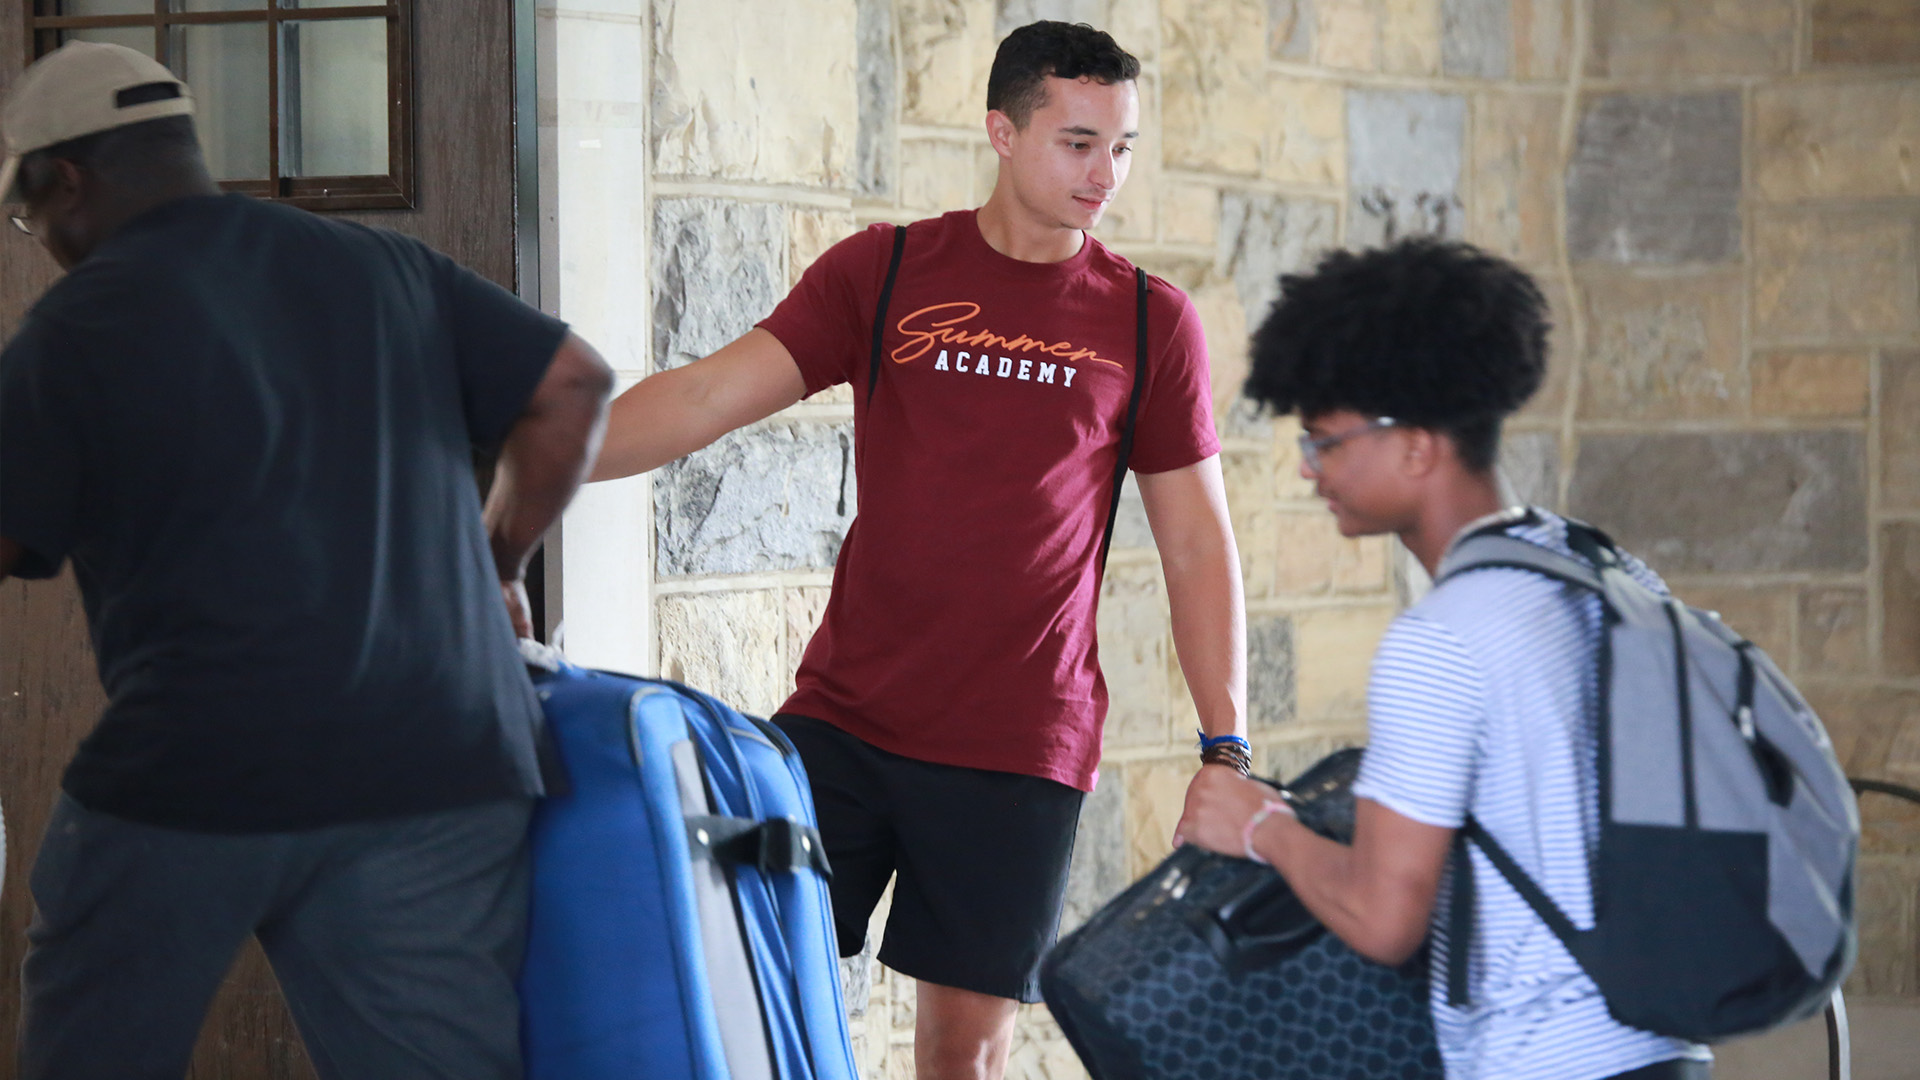 Virginia Tech Summer Academy Students moving in